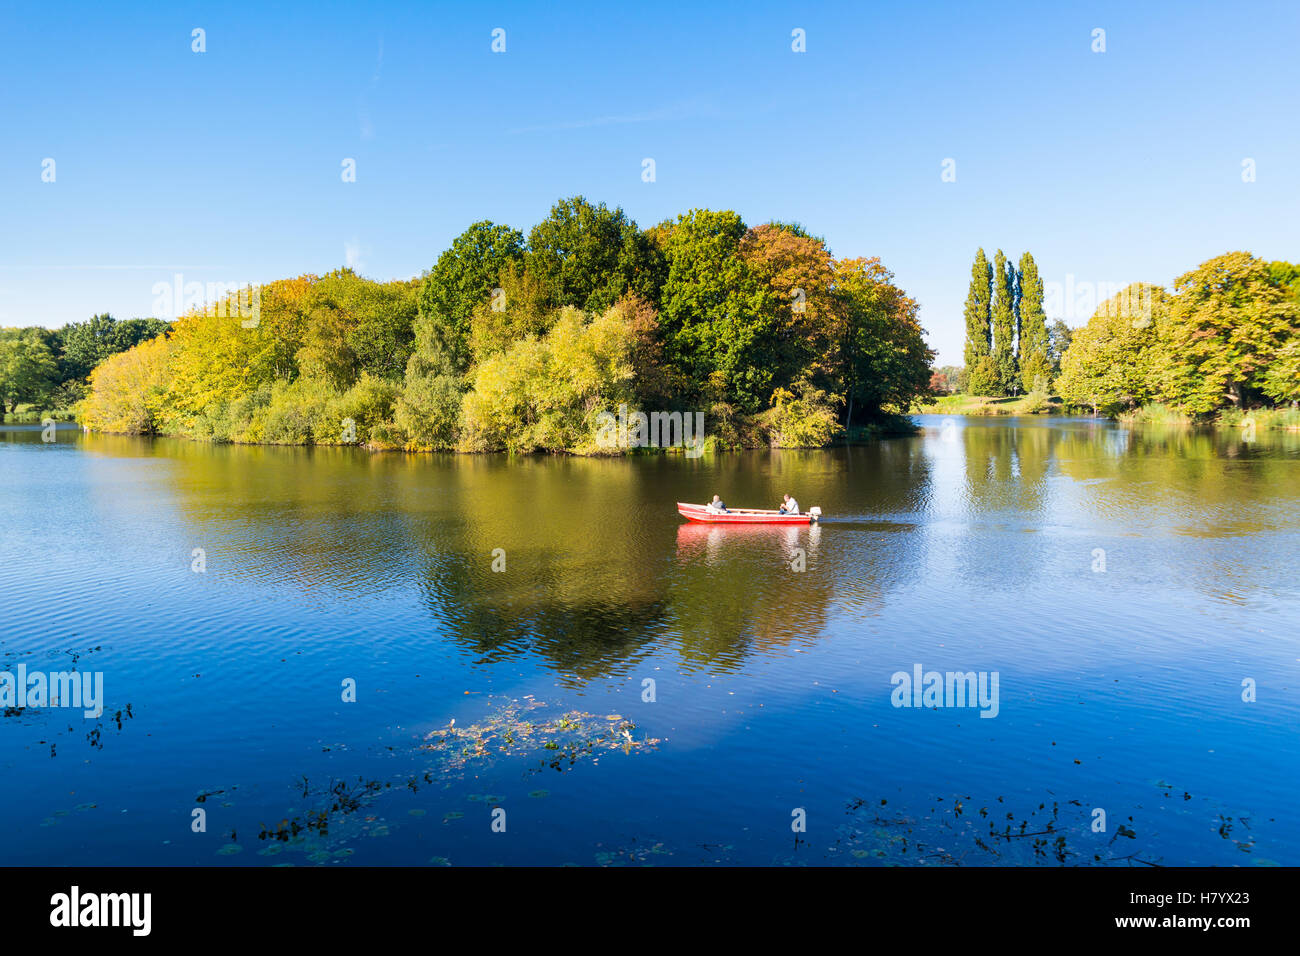 People in boat cruising on moat in autumn in old fortified town of Naarden, North Holland, Netherlands - Stock Image